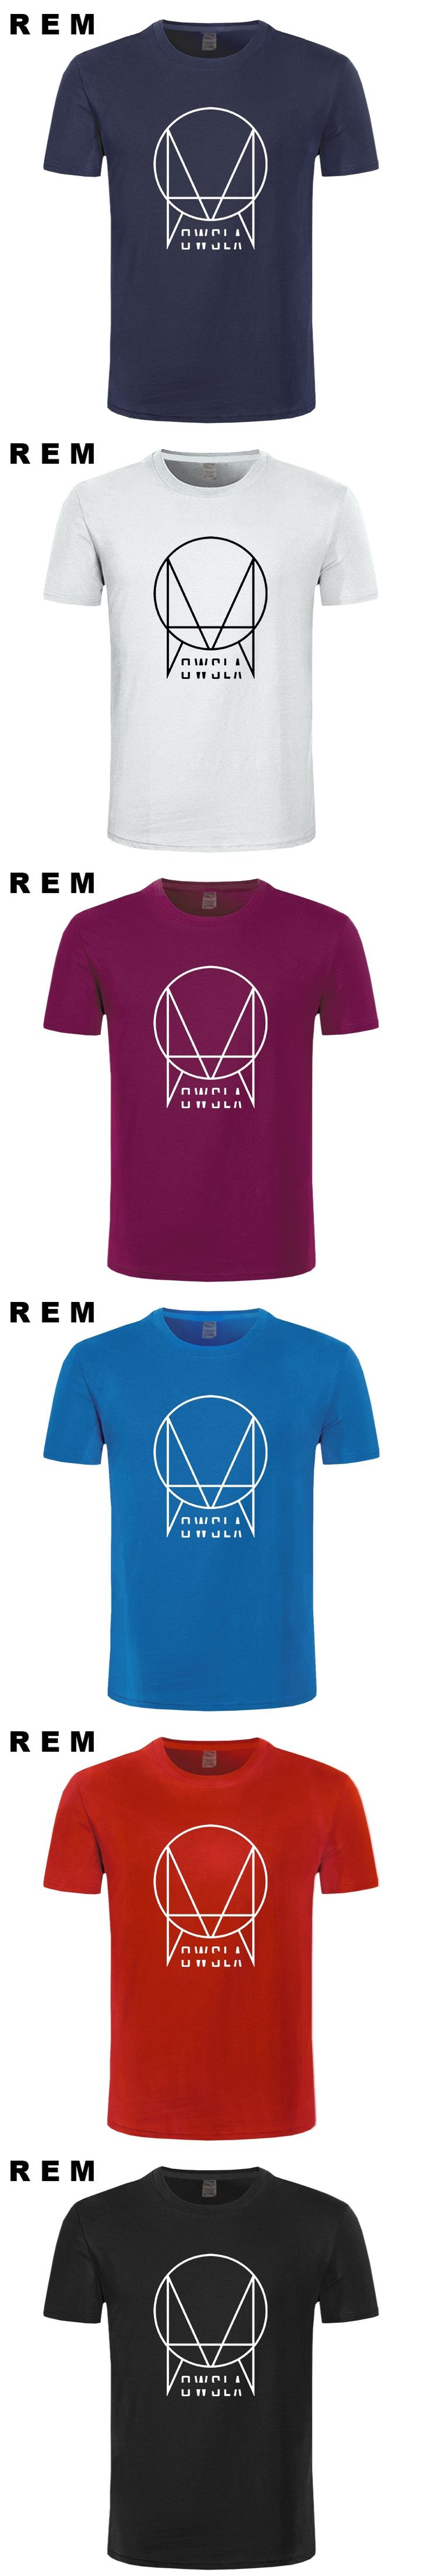 OWSLA Logo T Shirt Men Fashion DJ Skrillex T Shirts Short Sleeve Cotton Men Hip Hop T-shirt Tops Tee Free Shipping